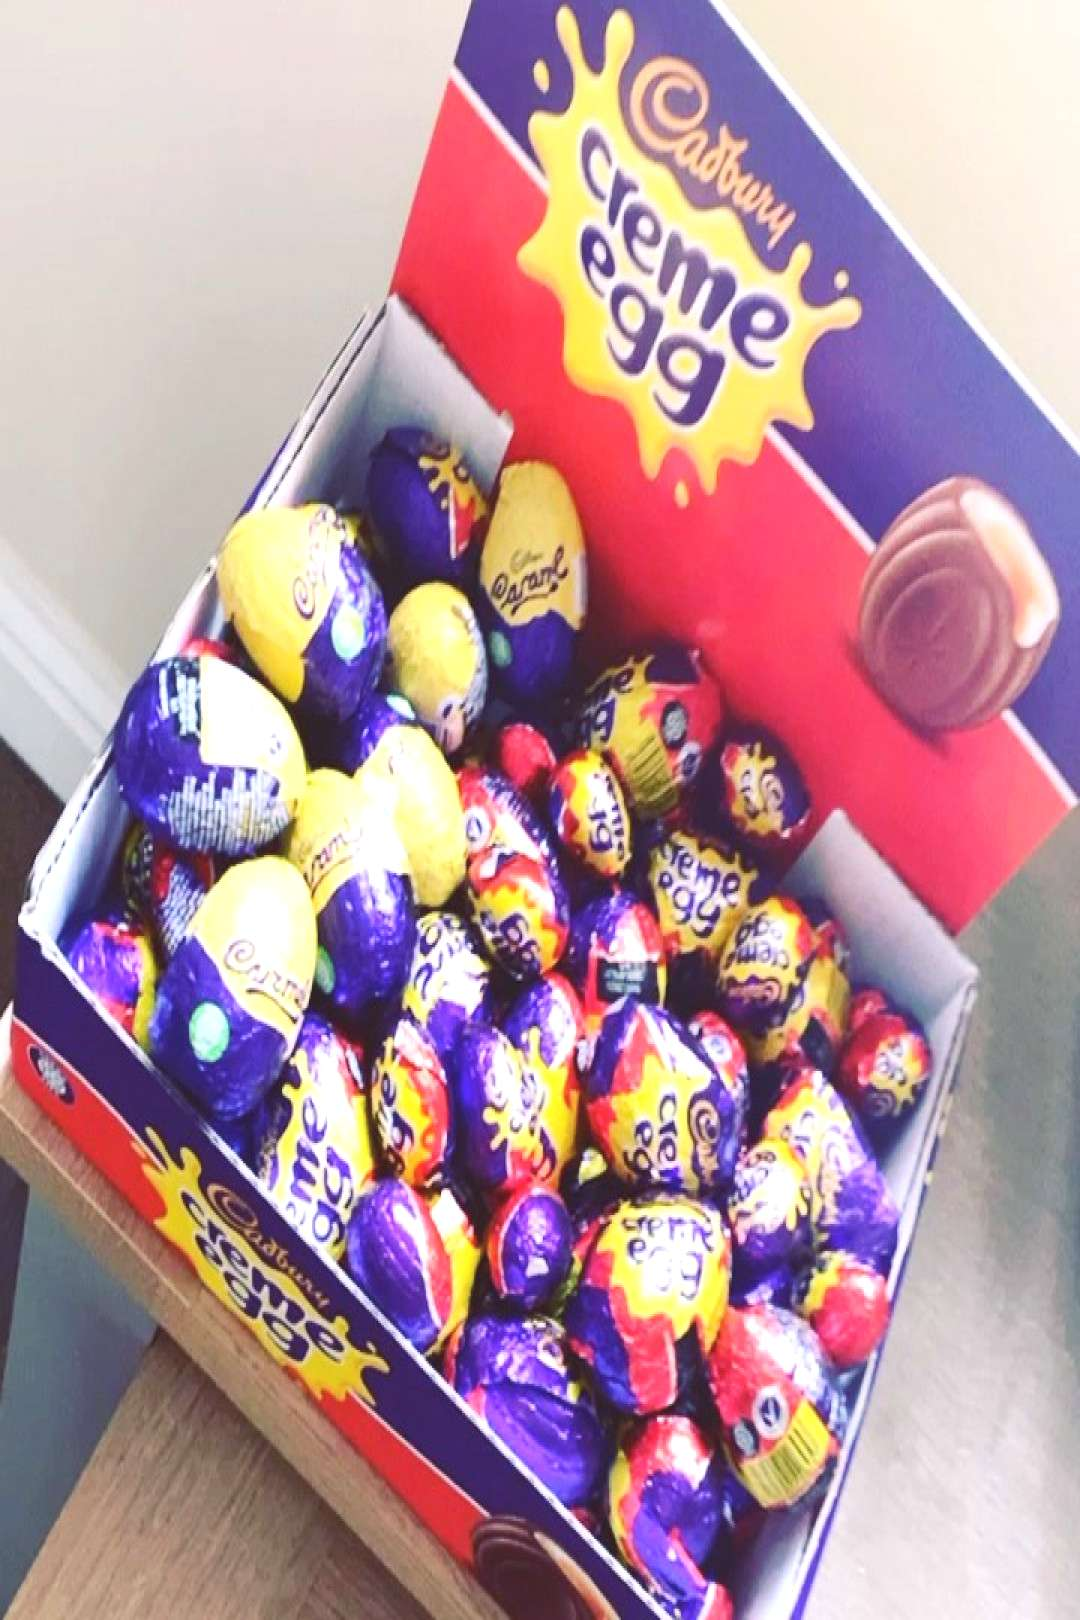 All stocked up ready for Easter good job I dont like creme eggs